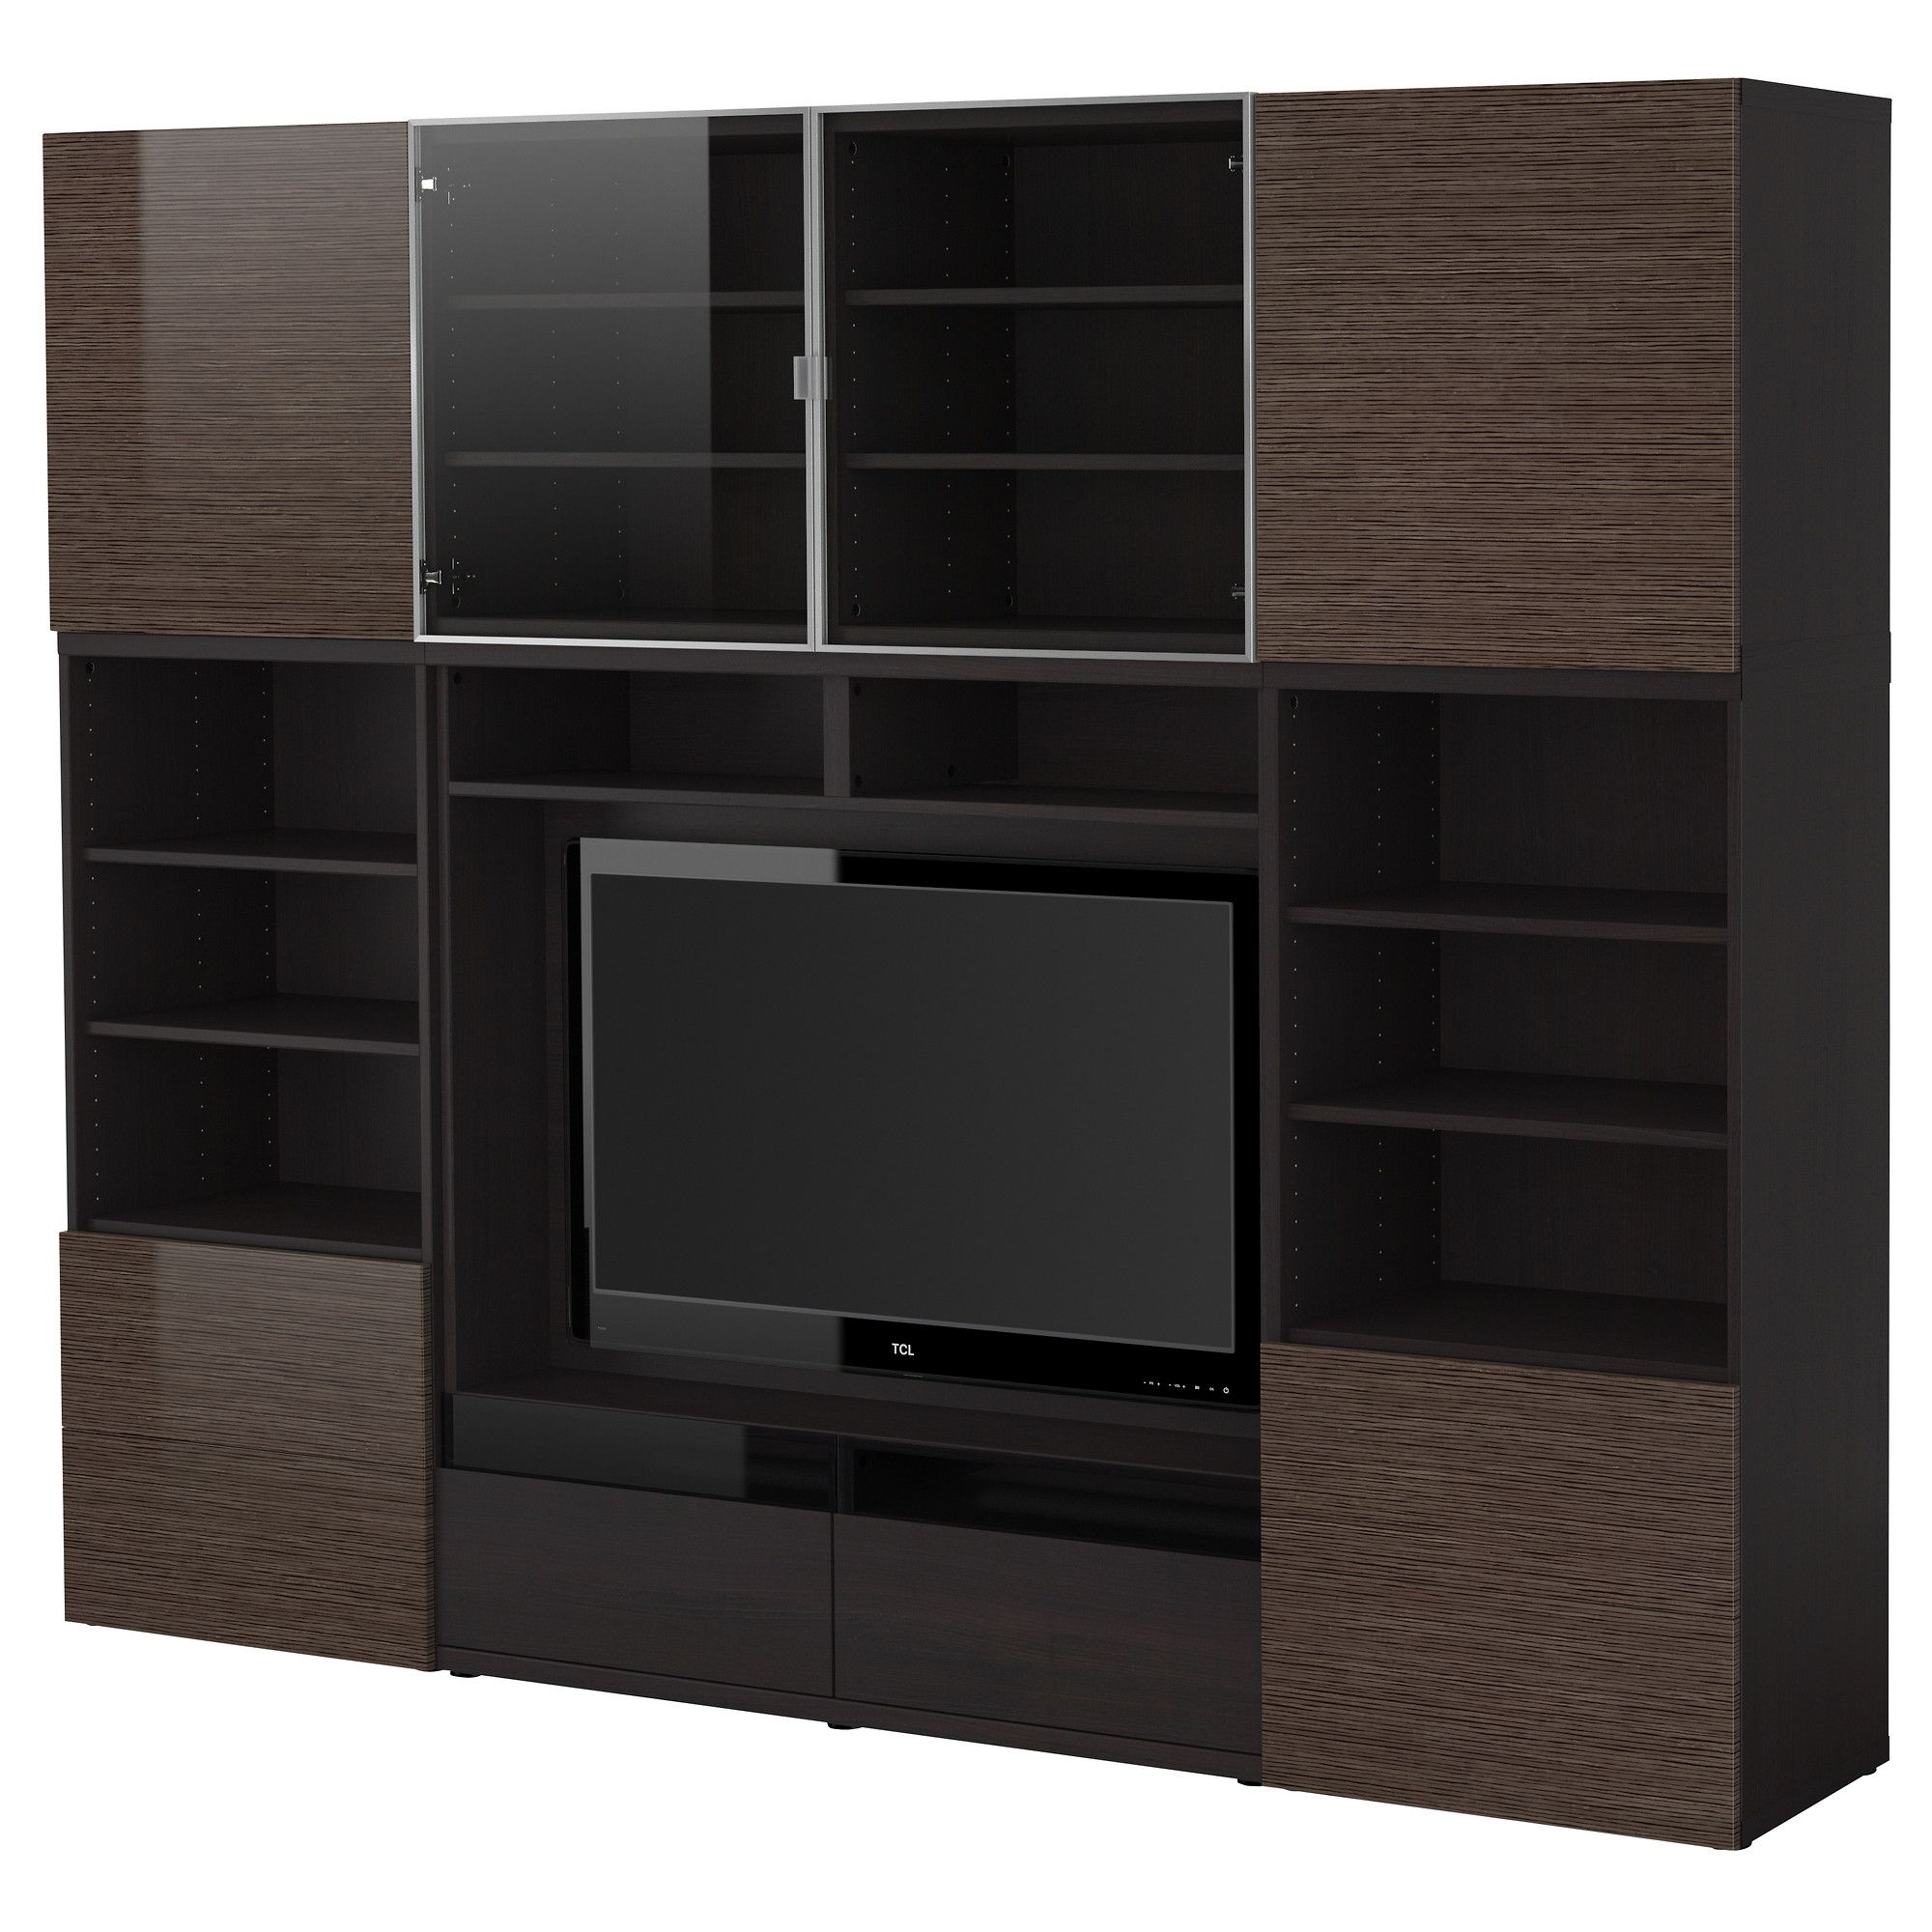 bestÅ tv storage combination black brown bamboo pattern high gloss